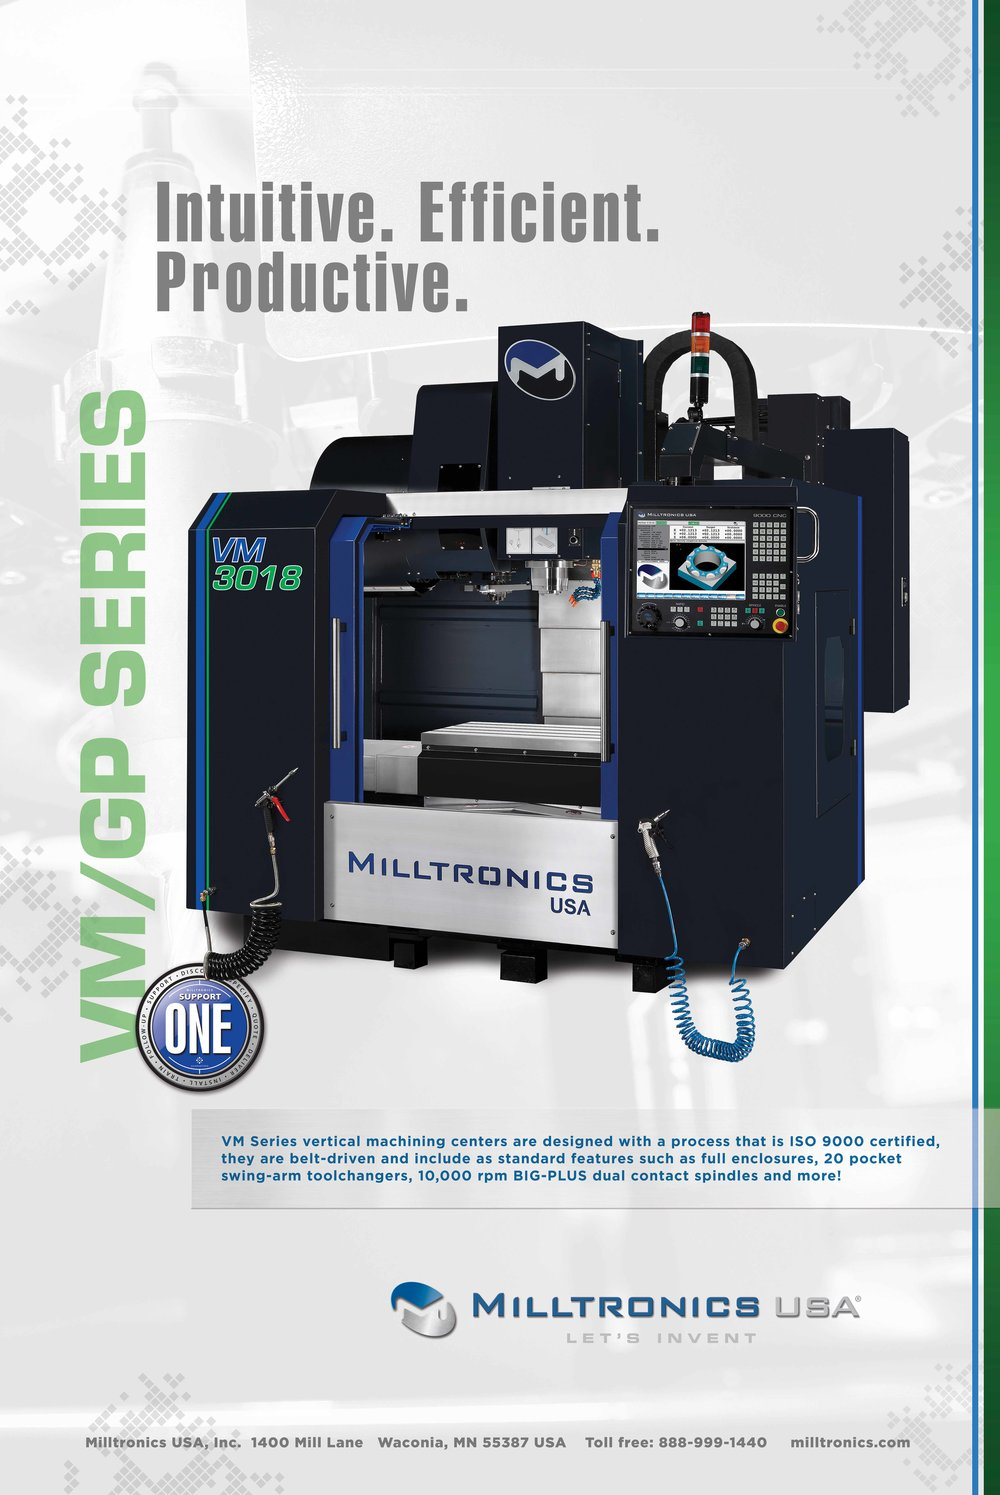 Poster design for Milltronics USA CNC Machines